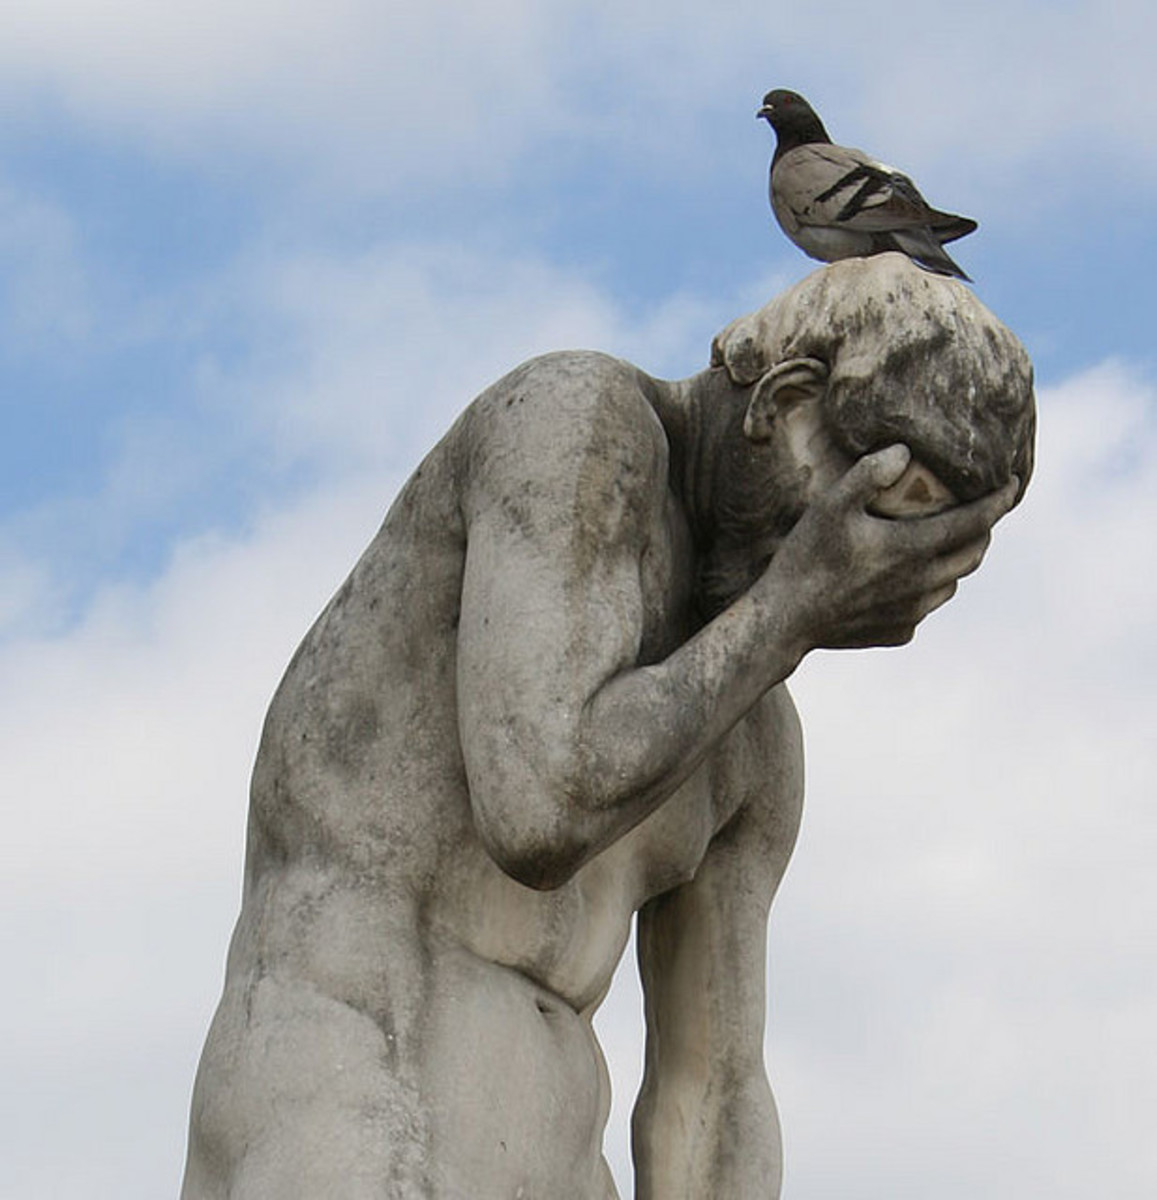 Is the pigeon there to poop on his head or listen to his troubles?  You decide.